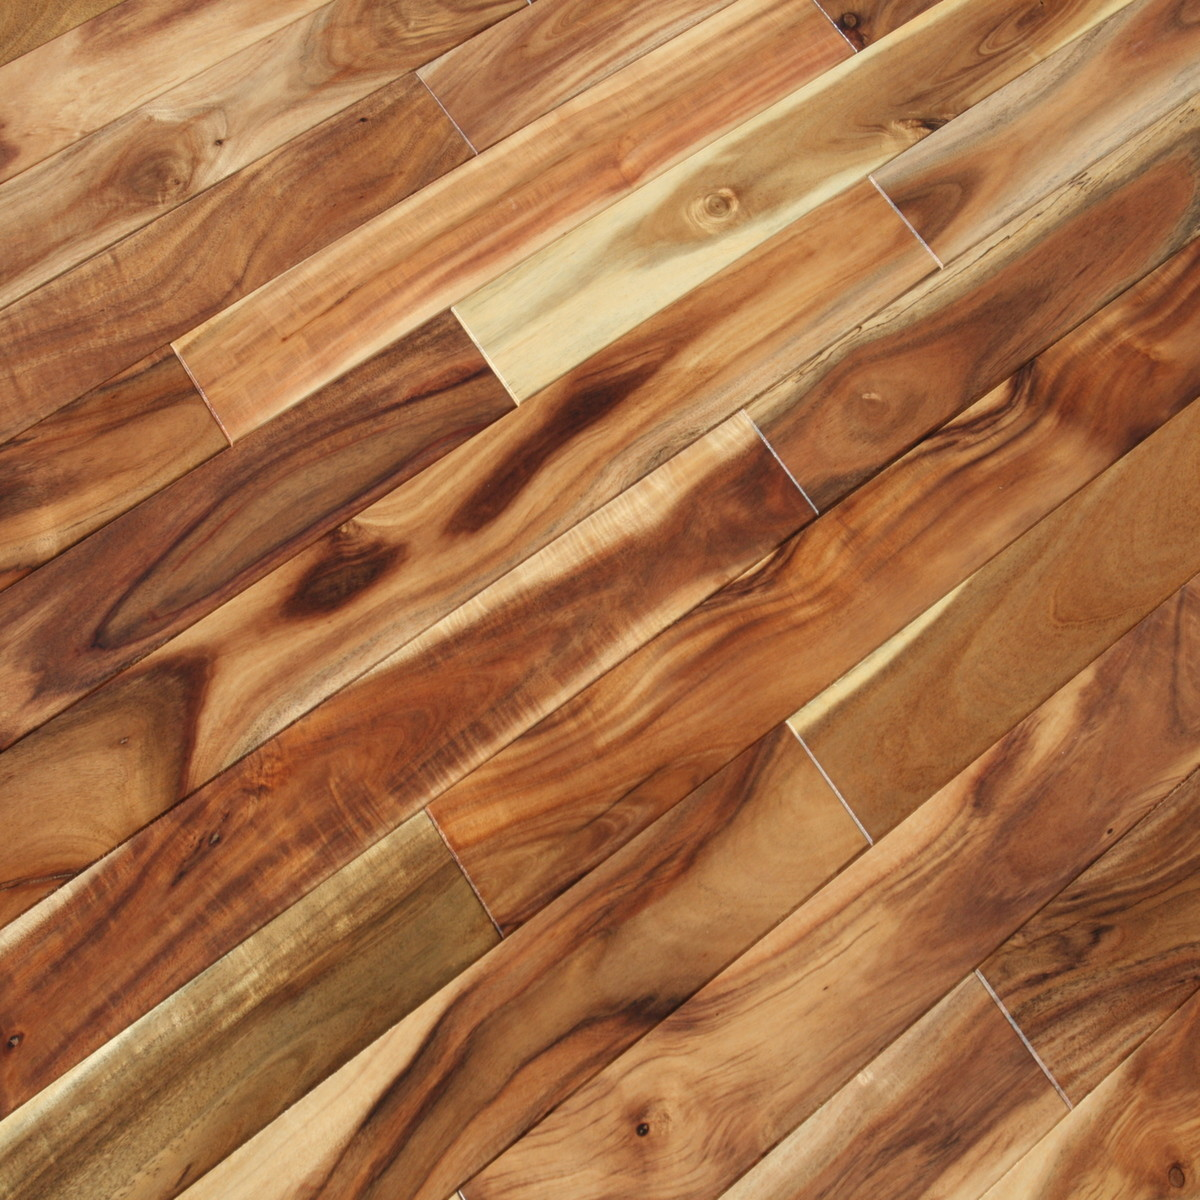 cacia Blonde Hardwood Flooring cacia onfusa Wood Floors ... - ^